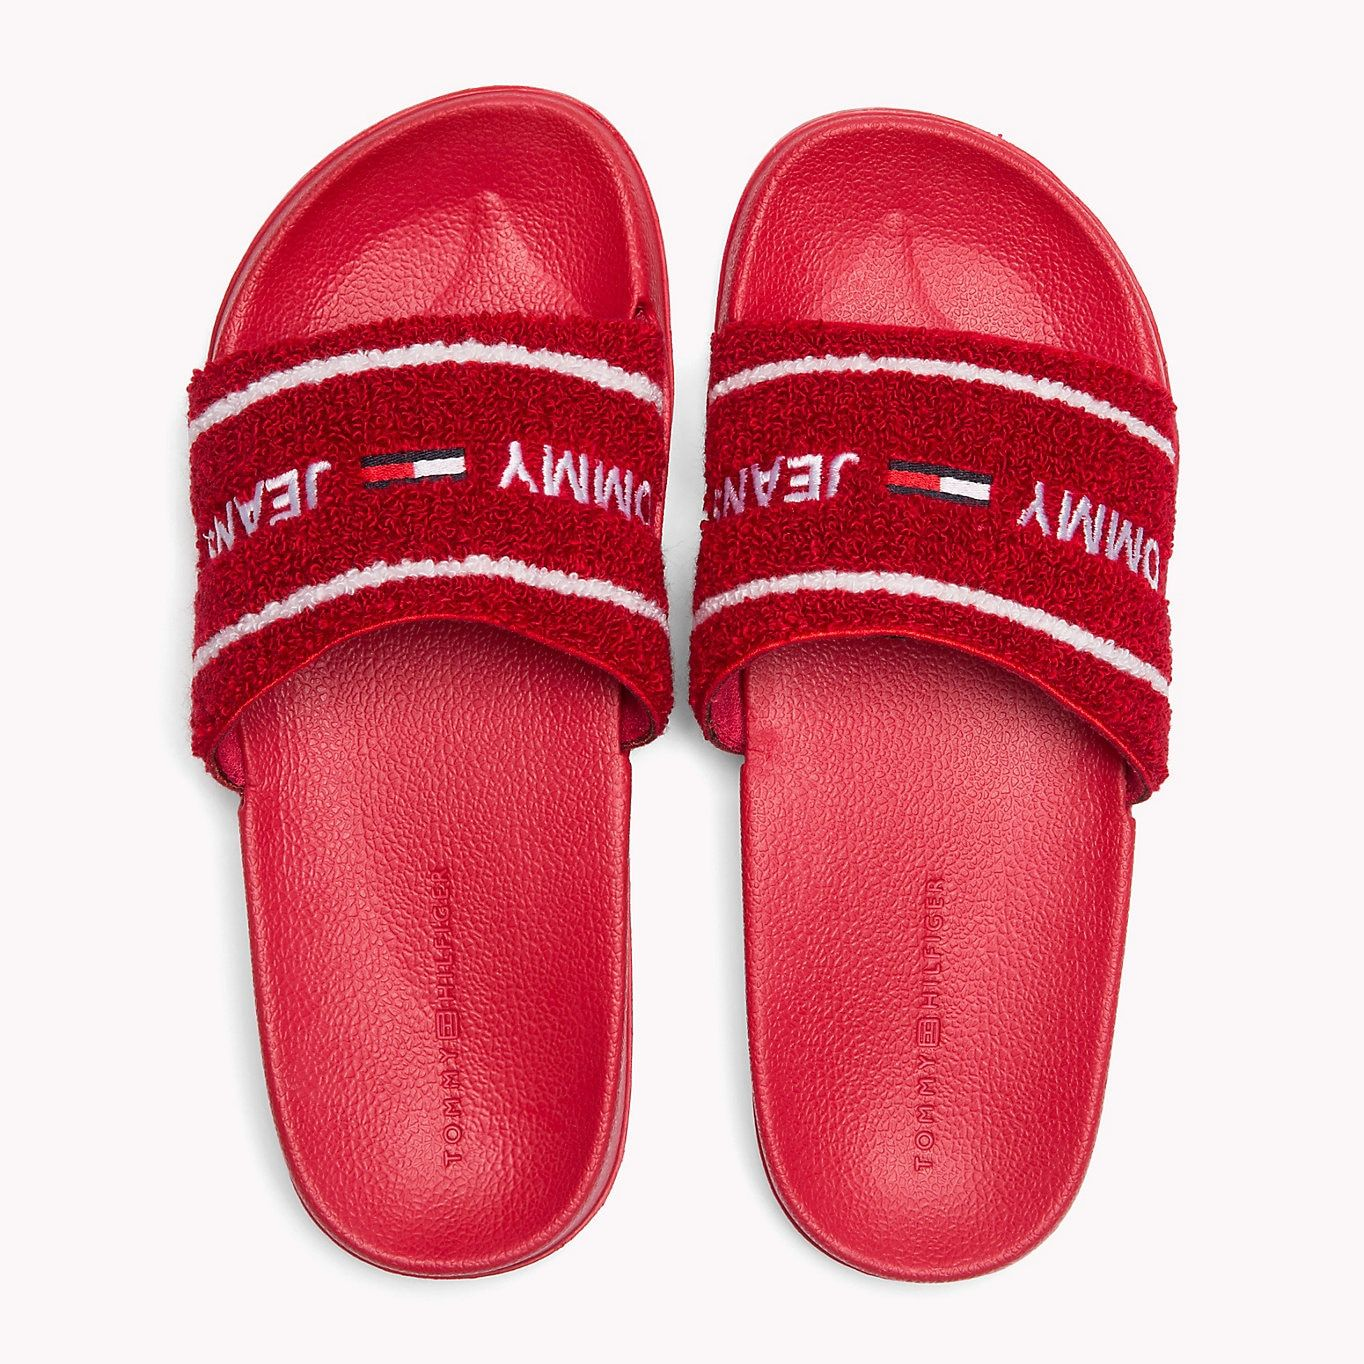 de69a15495da3 TOMMY JEANS Embroidered Terry Beach Sliders - TOMMY RED - TOMMY JEANS Women  - detail image 3